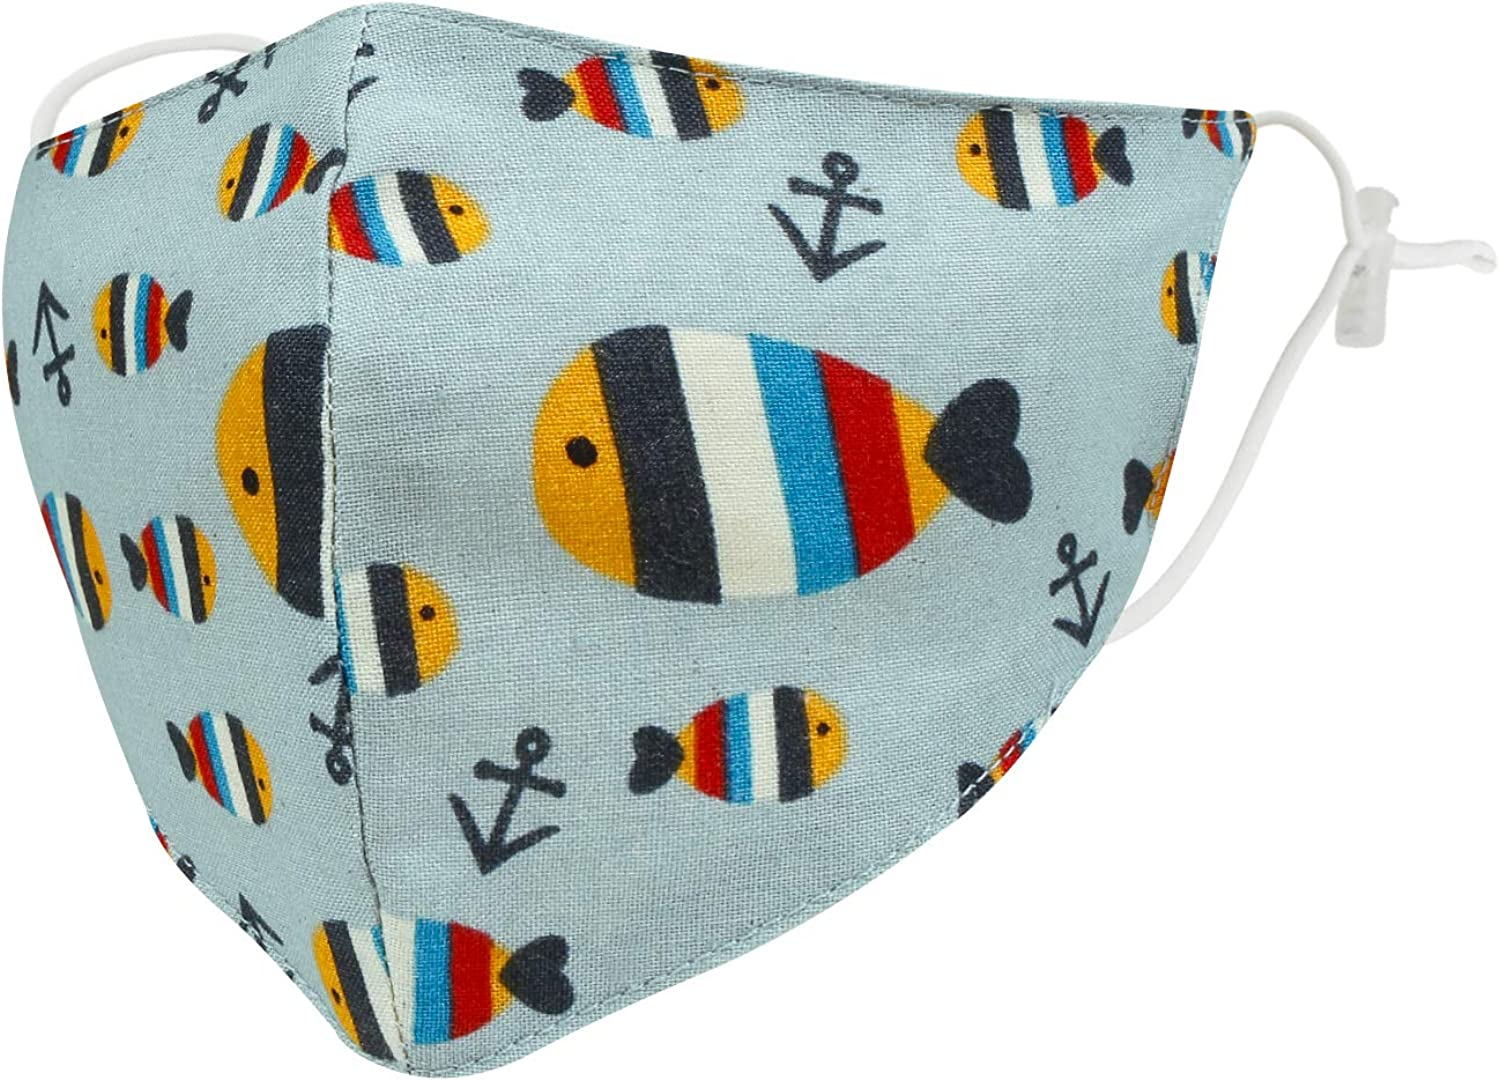 ililily Cotton Washable Kids Face Cover Patterned Face Shield W//Filter Pocket